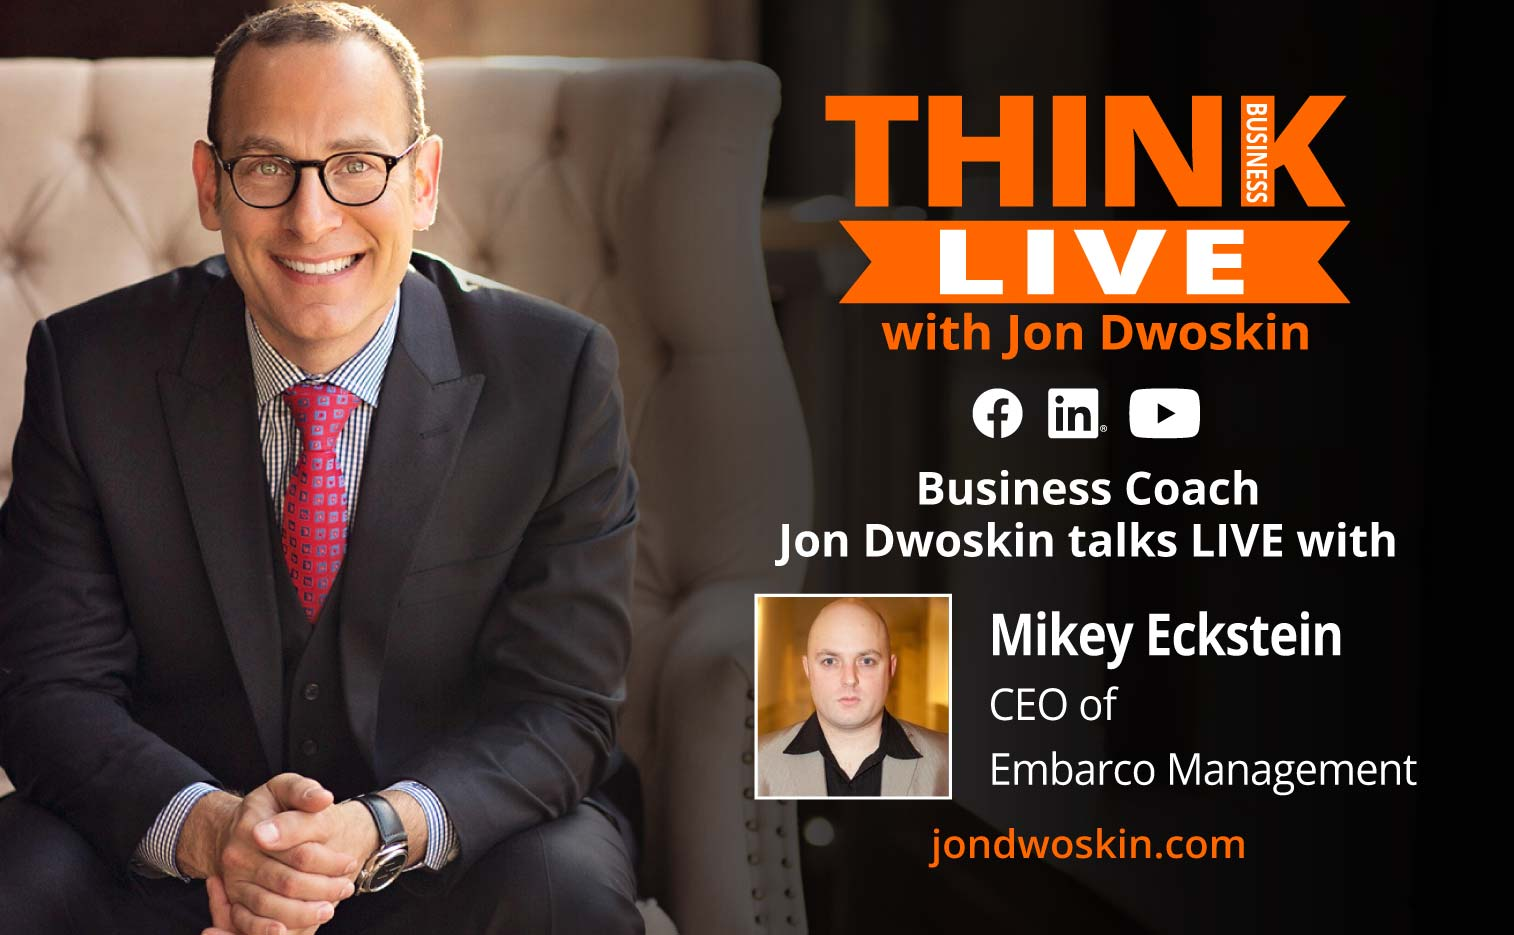 Jon Dwoskin Talks LIVE with Mikey Eckstein, CEO of Embarco Management